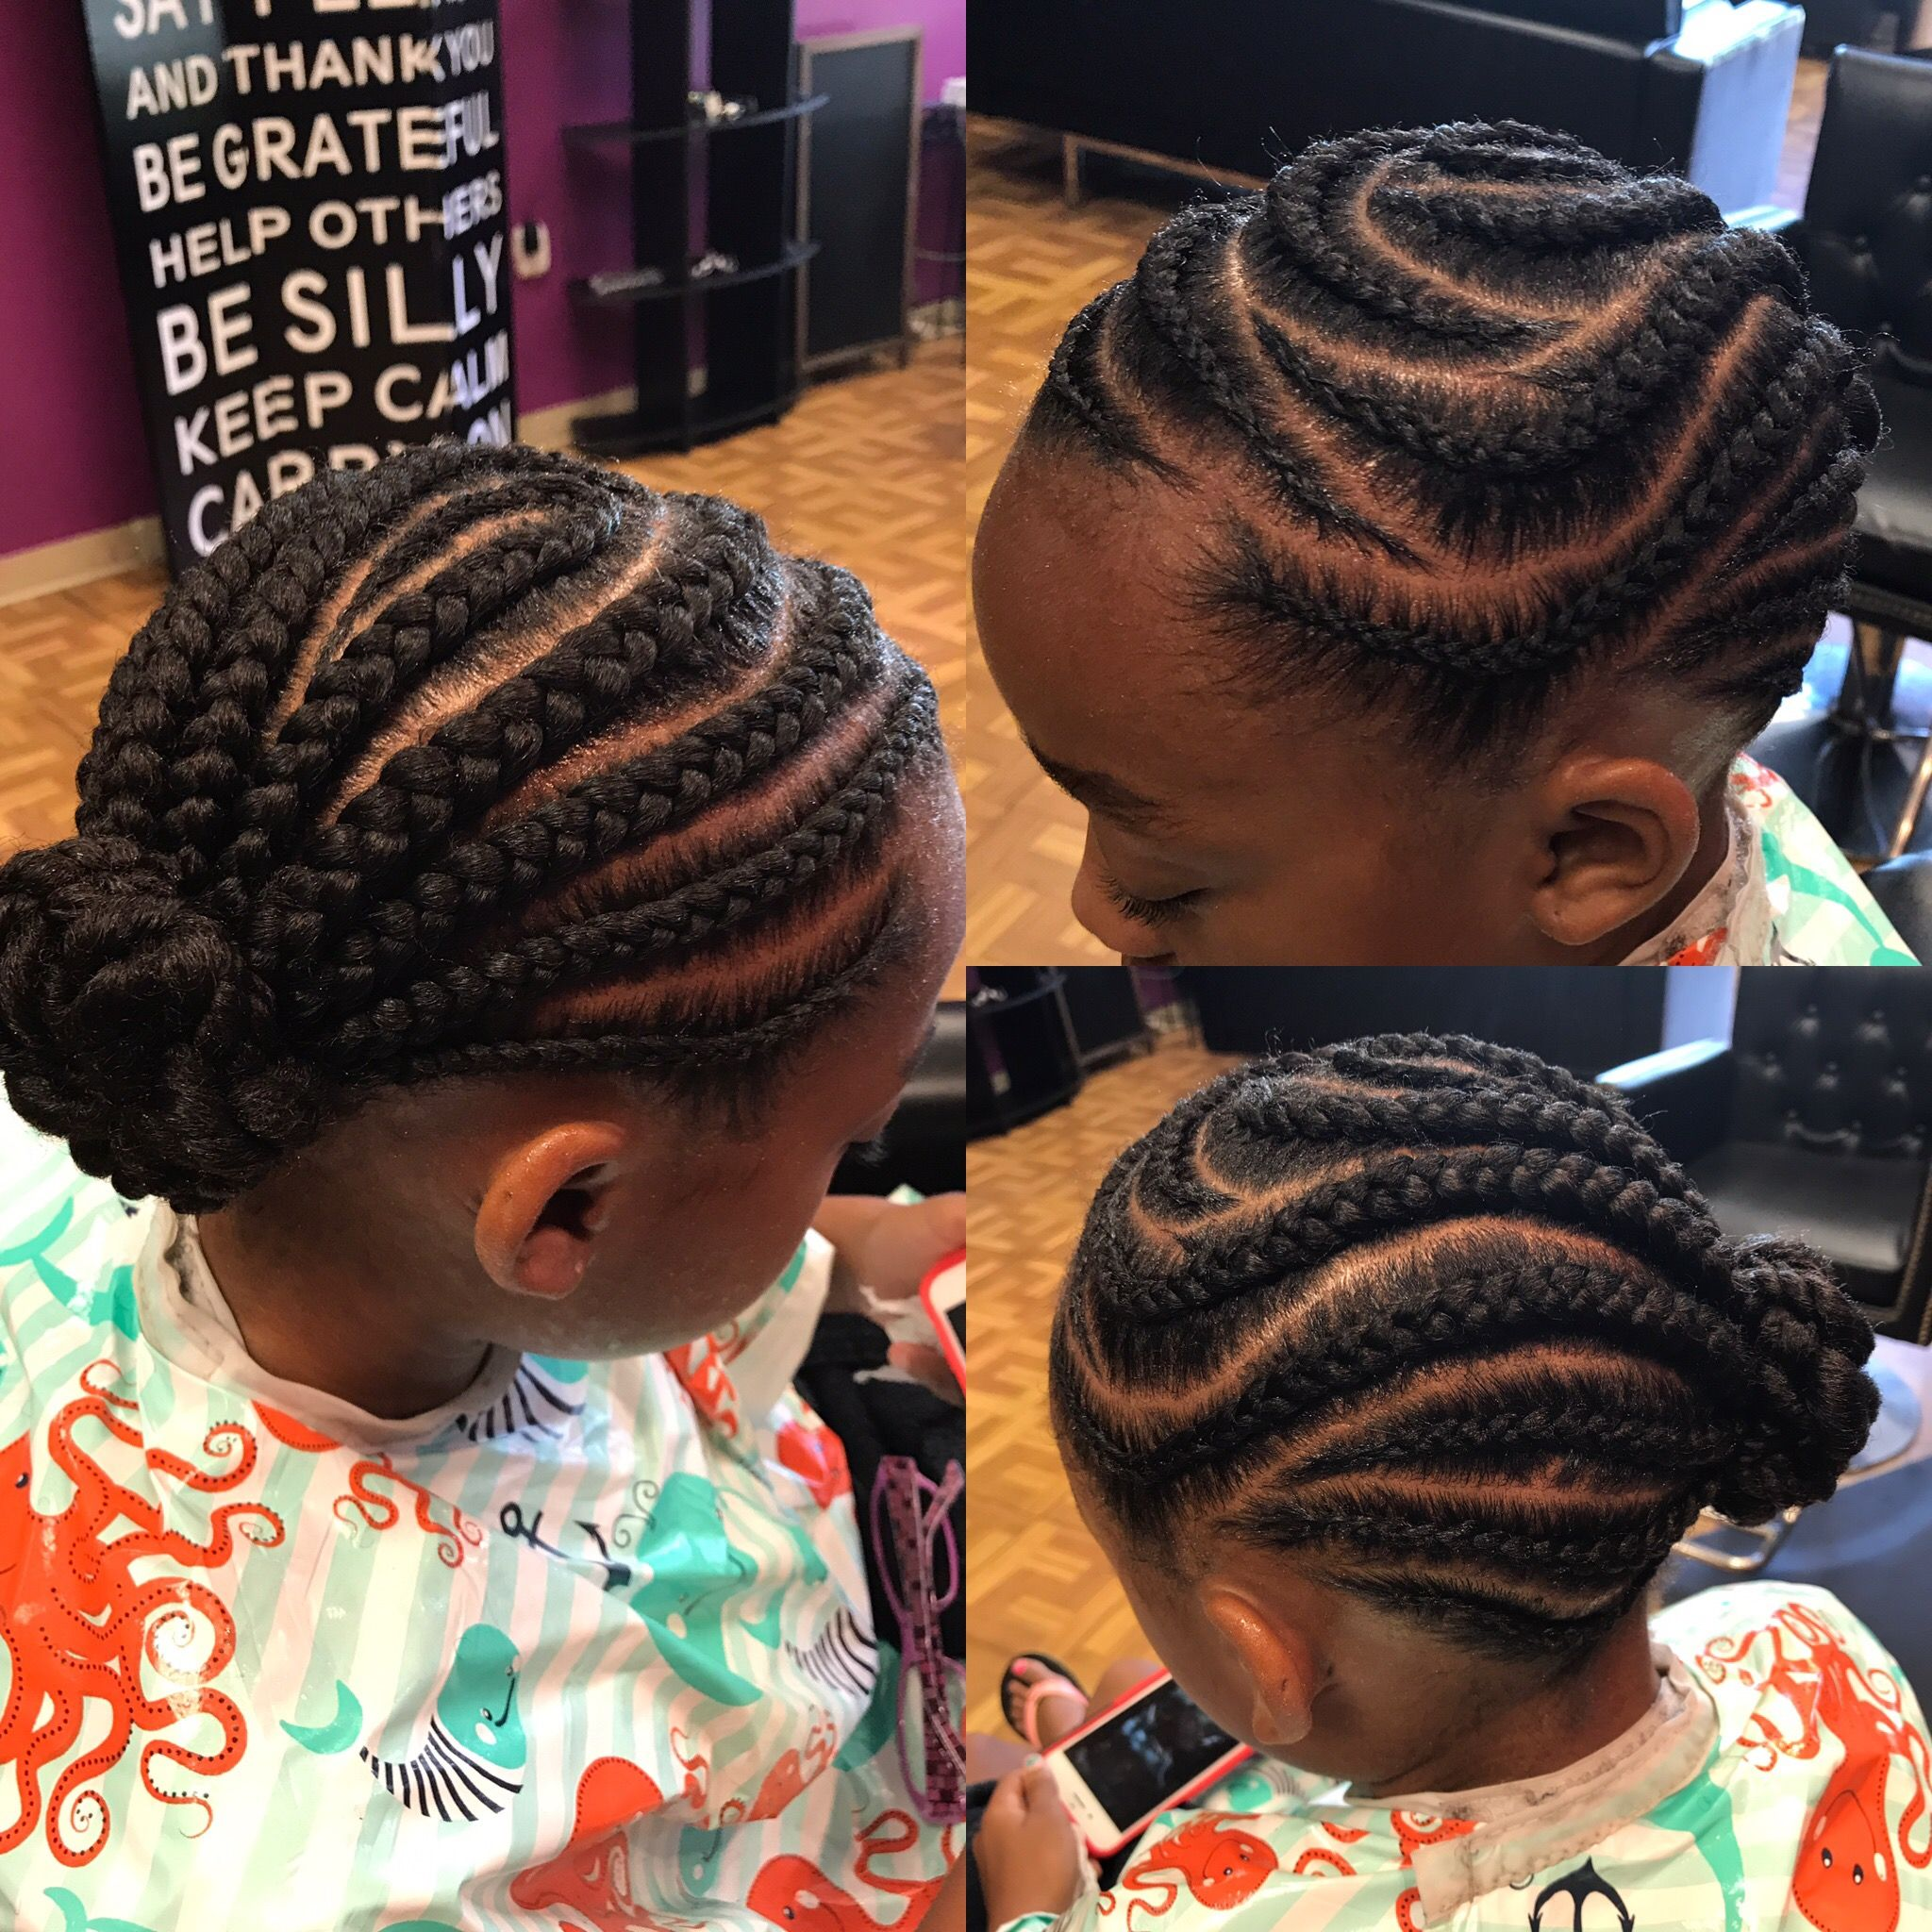 Cute hairstyles for kids hairstyleforblackwomen.net 94